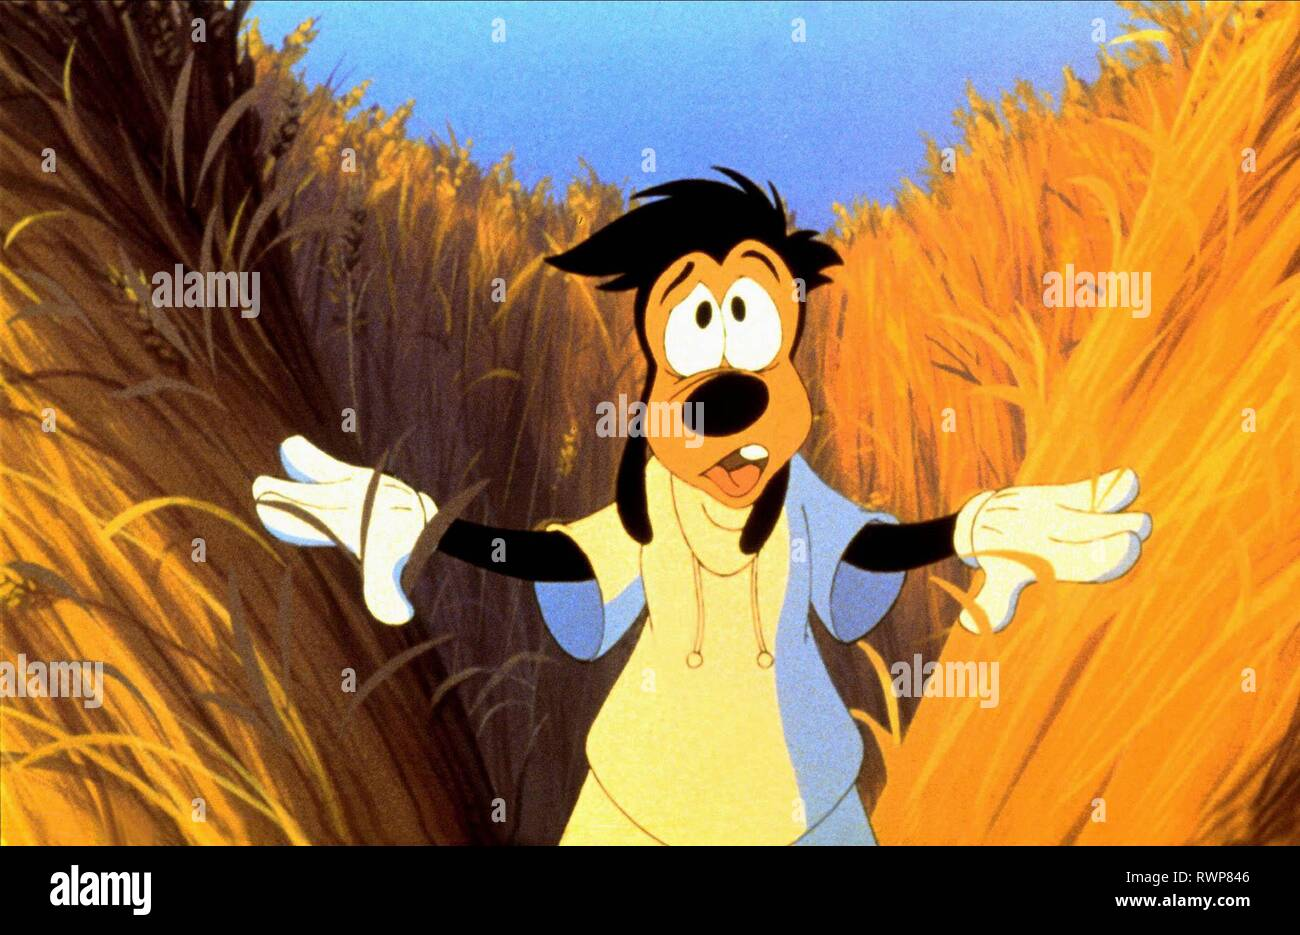 Goofy Movie High Resolution Stock Photography And Images Alamy